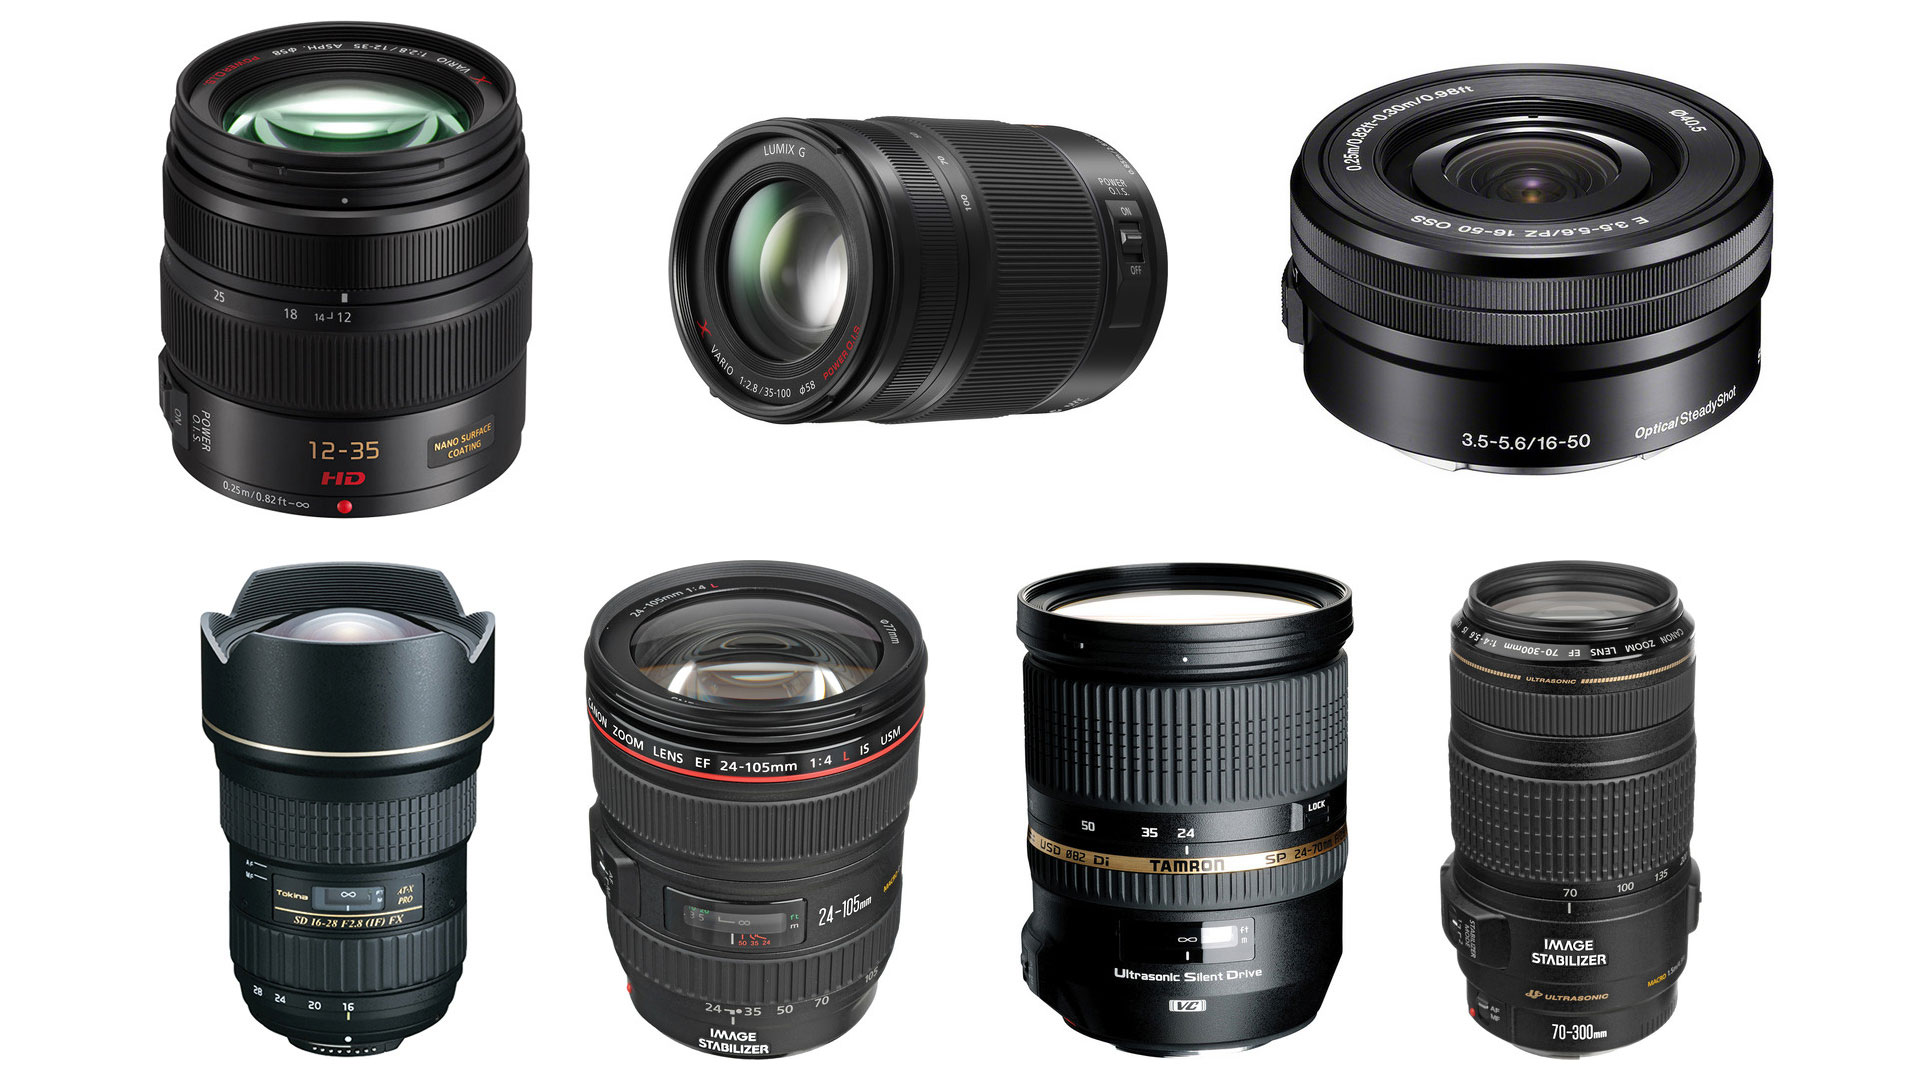 10 Best Zoom Lenses For Filming On A Budget | cinema5D